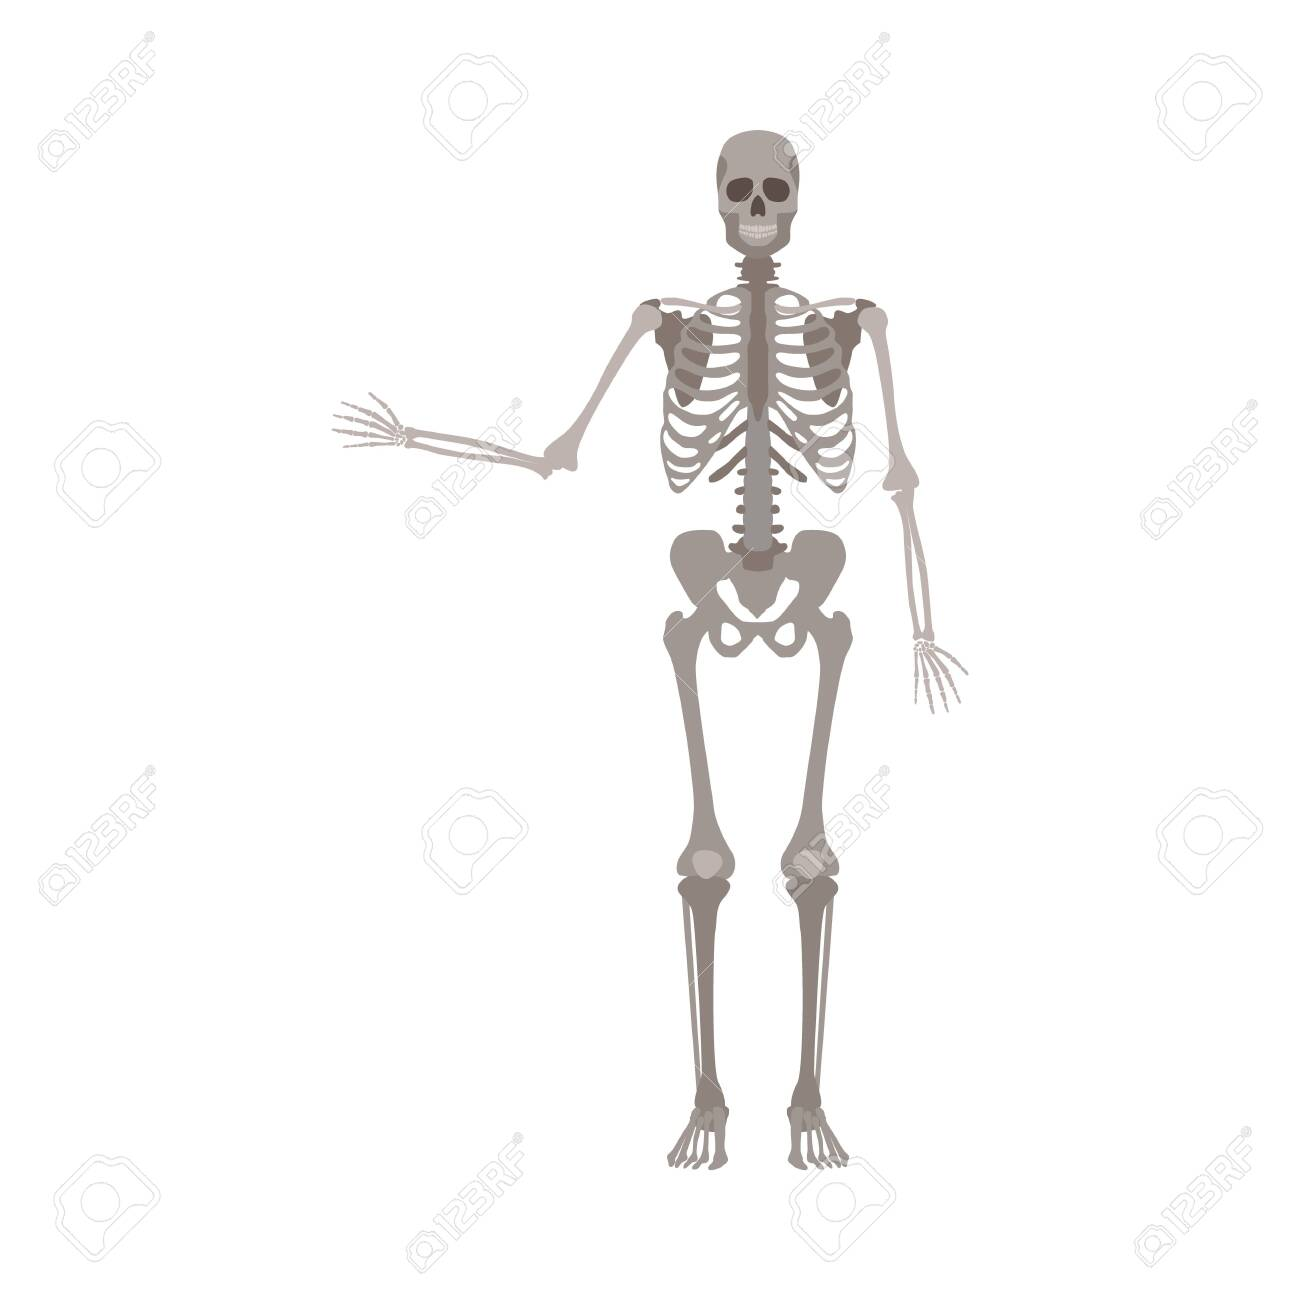 Skeleton of human body anatomically detailed with one hand's bones up vector illustration isolated on white background. Medical, biological or halloween design element. - 128171467